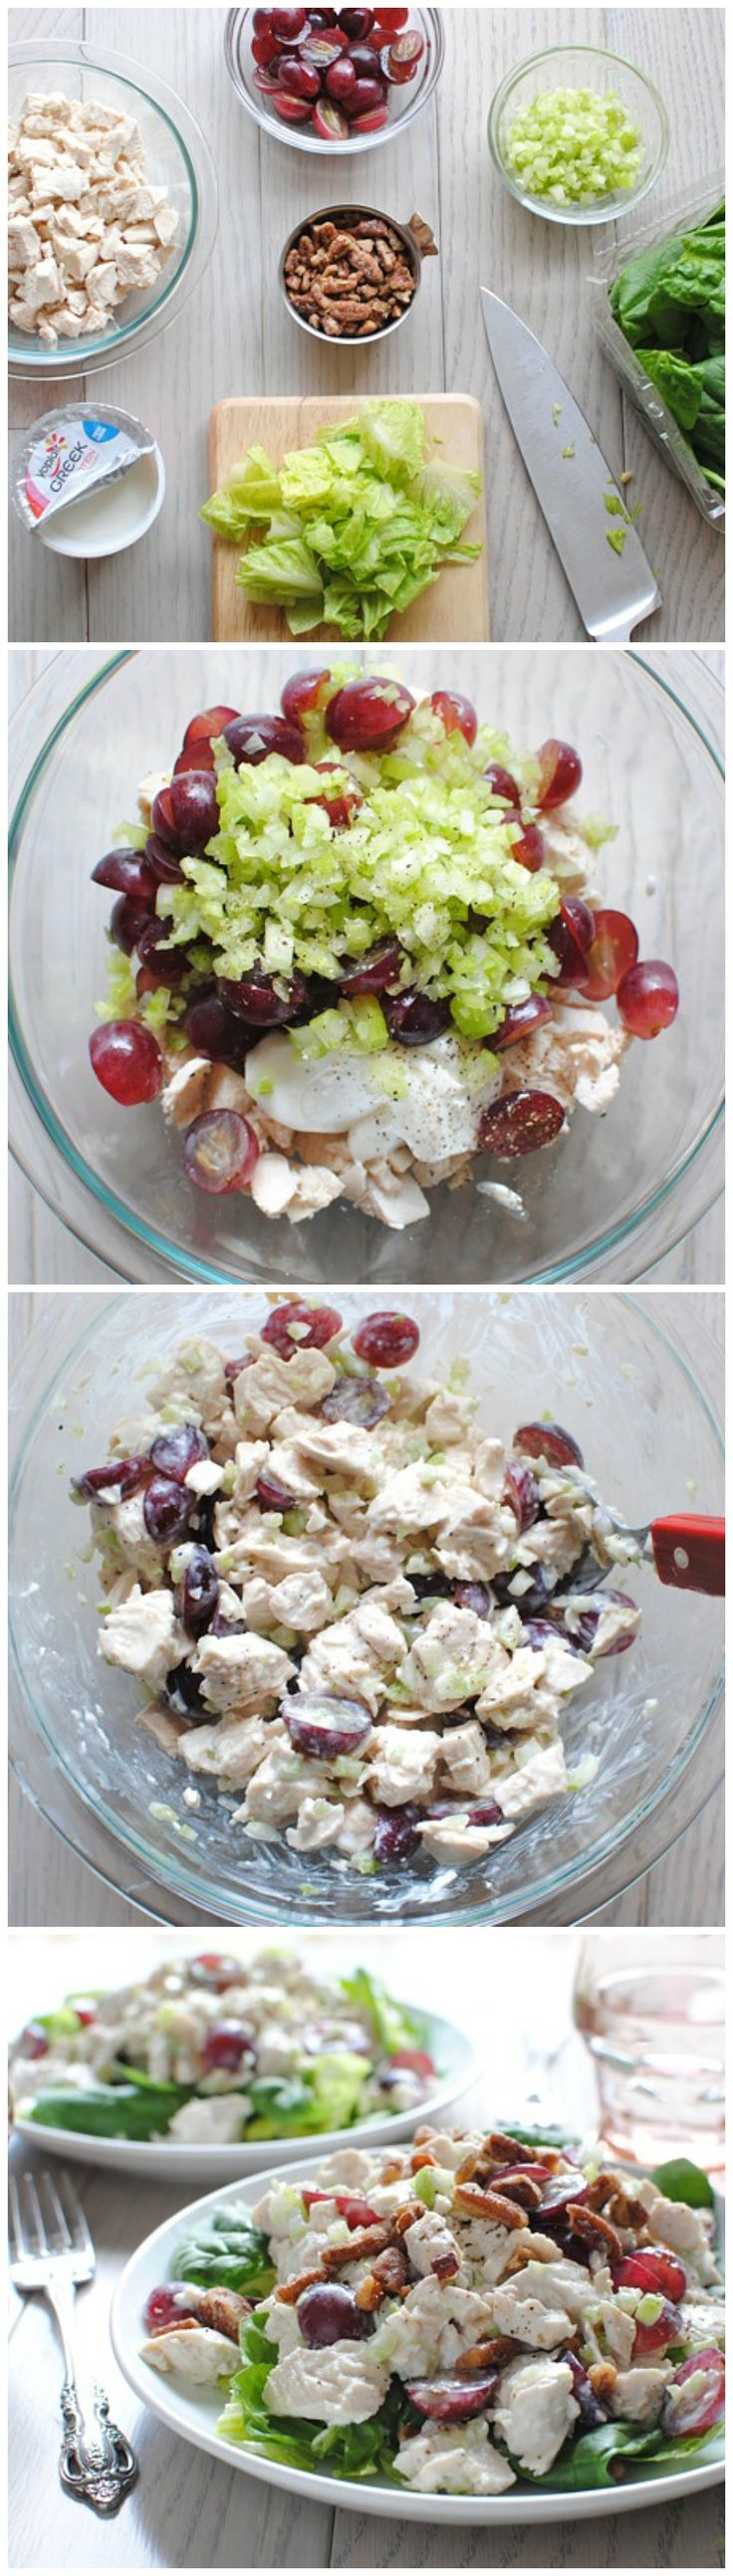 Greek Yogurt Chicken Salad- take out the nuts